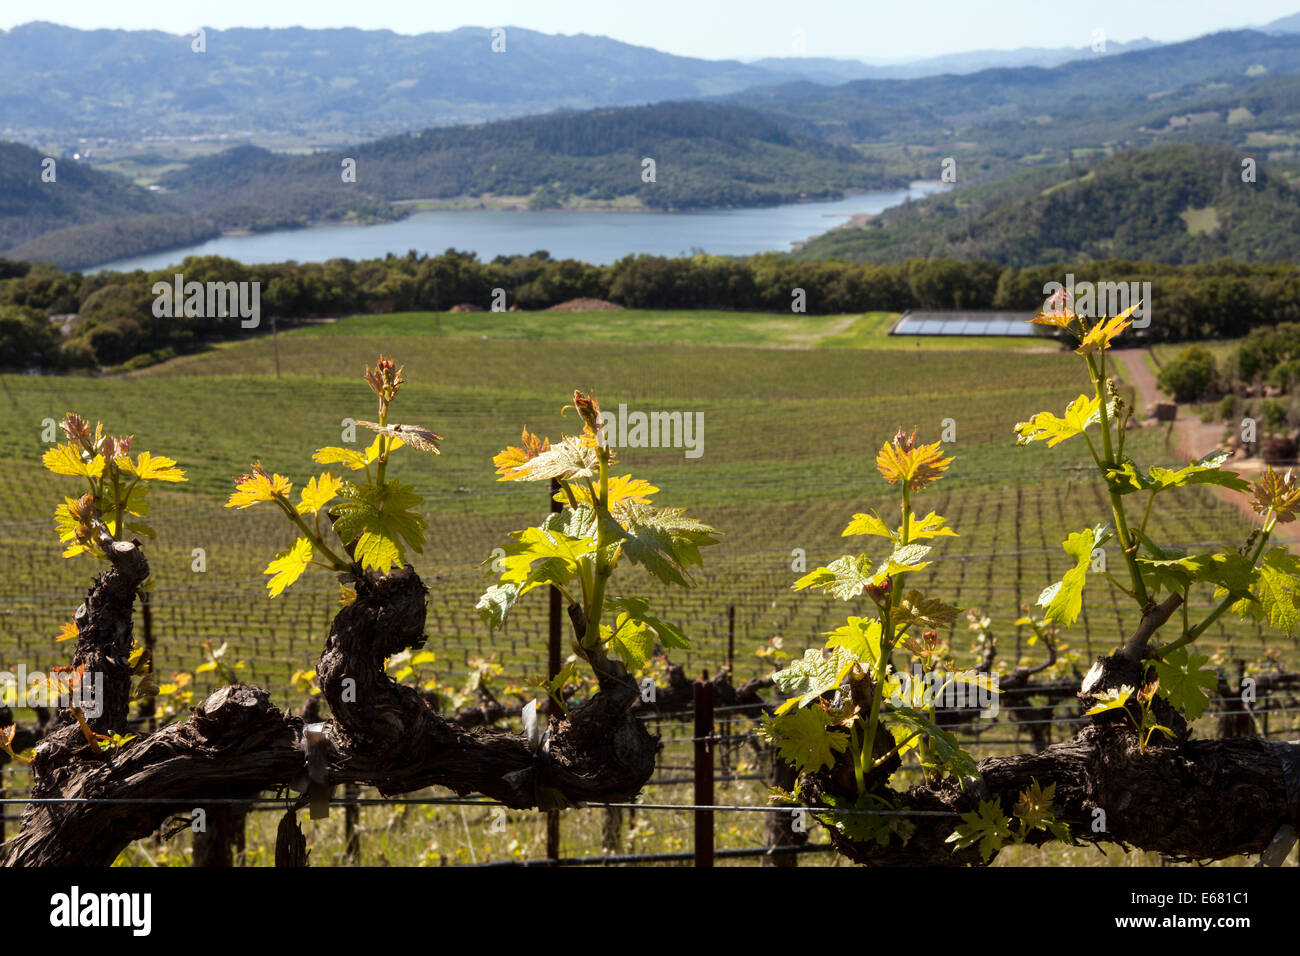 Hennessey Lake viewed from Continuum Estate, Napa Valley, California, USA - Stock Image